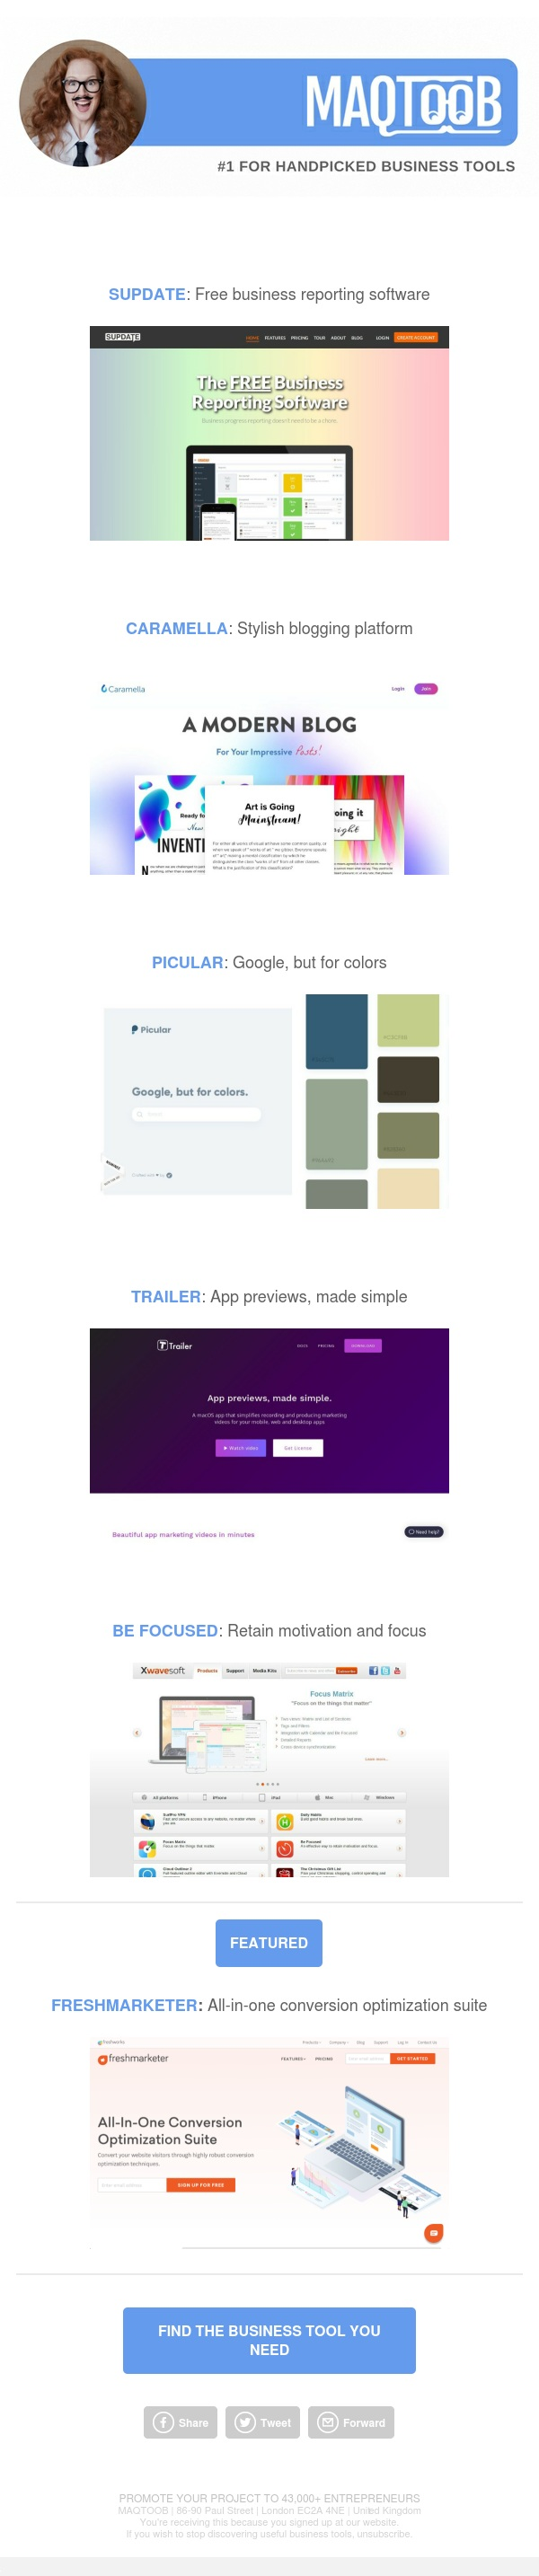 Best new business tools 👌